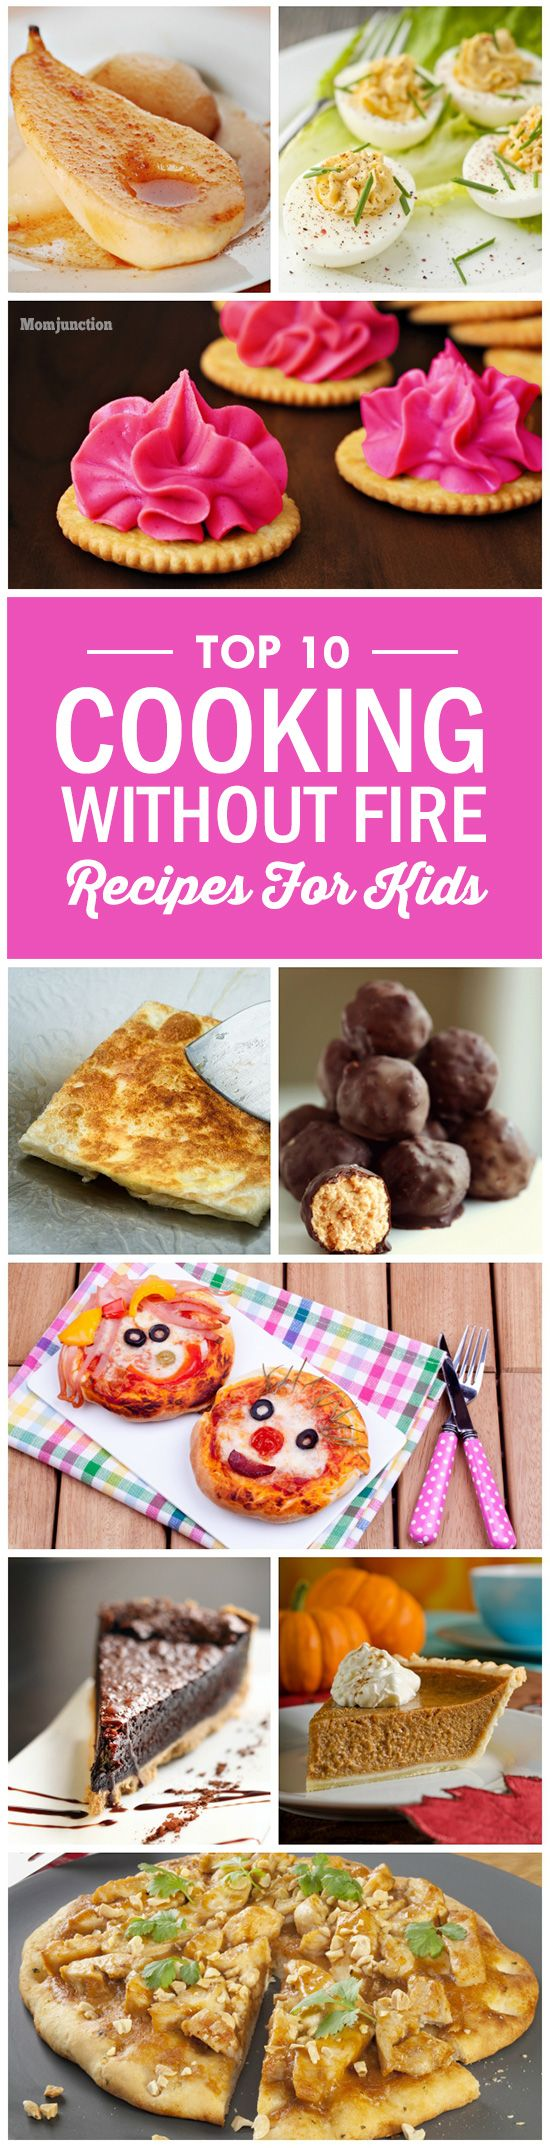 15 easy and quick recipes for kids to make pinterest easy 10 simple easy cooking recipes you must try today with your kids forumfinder Image collections